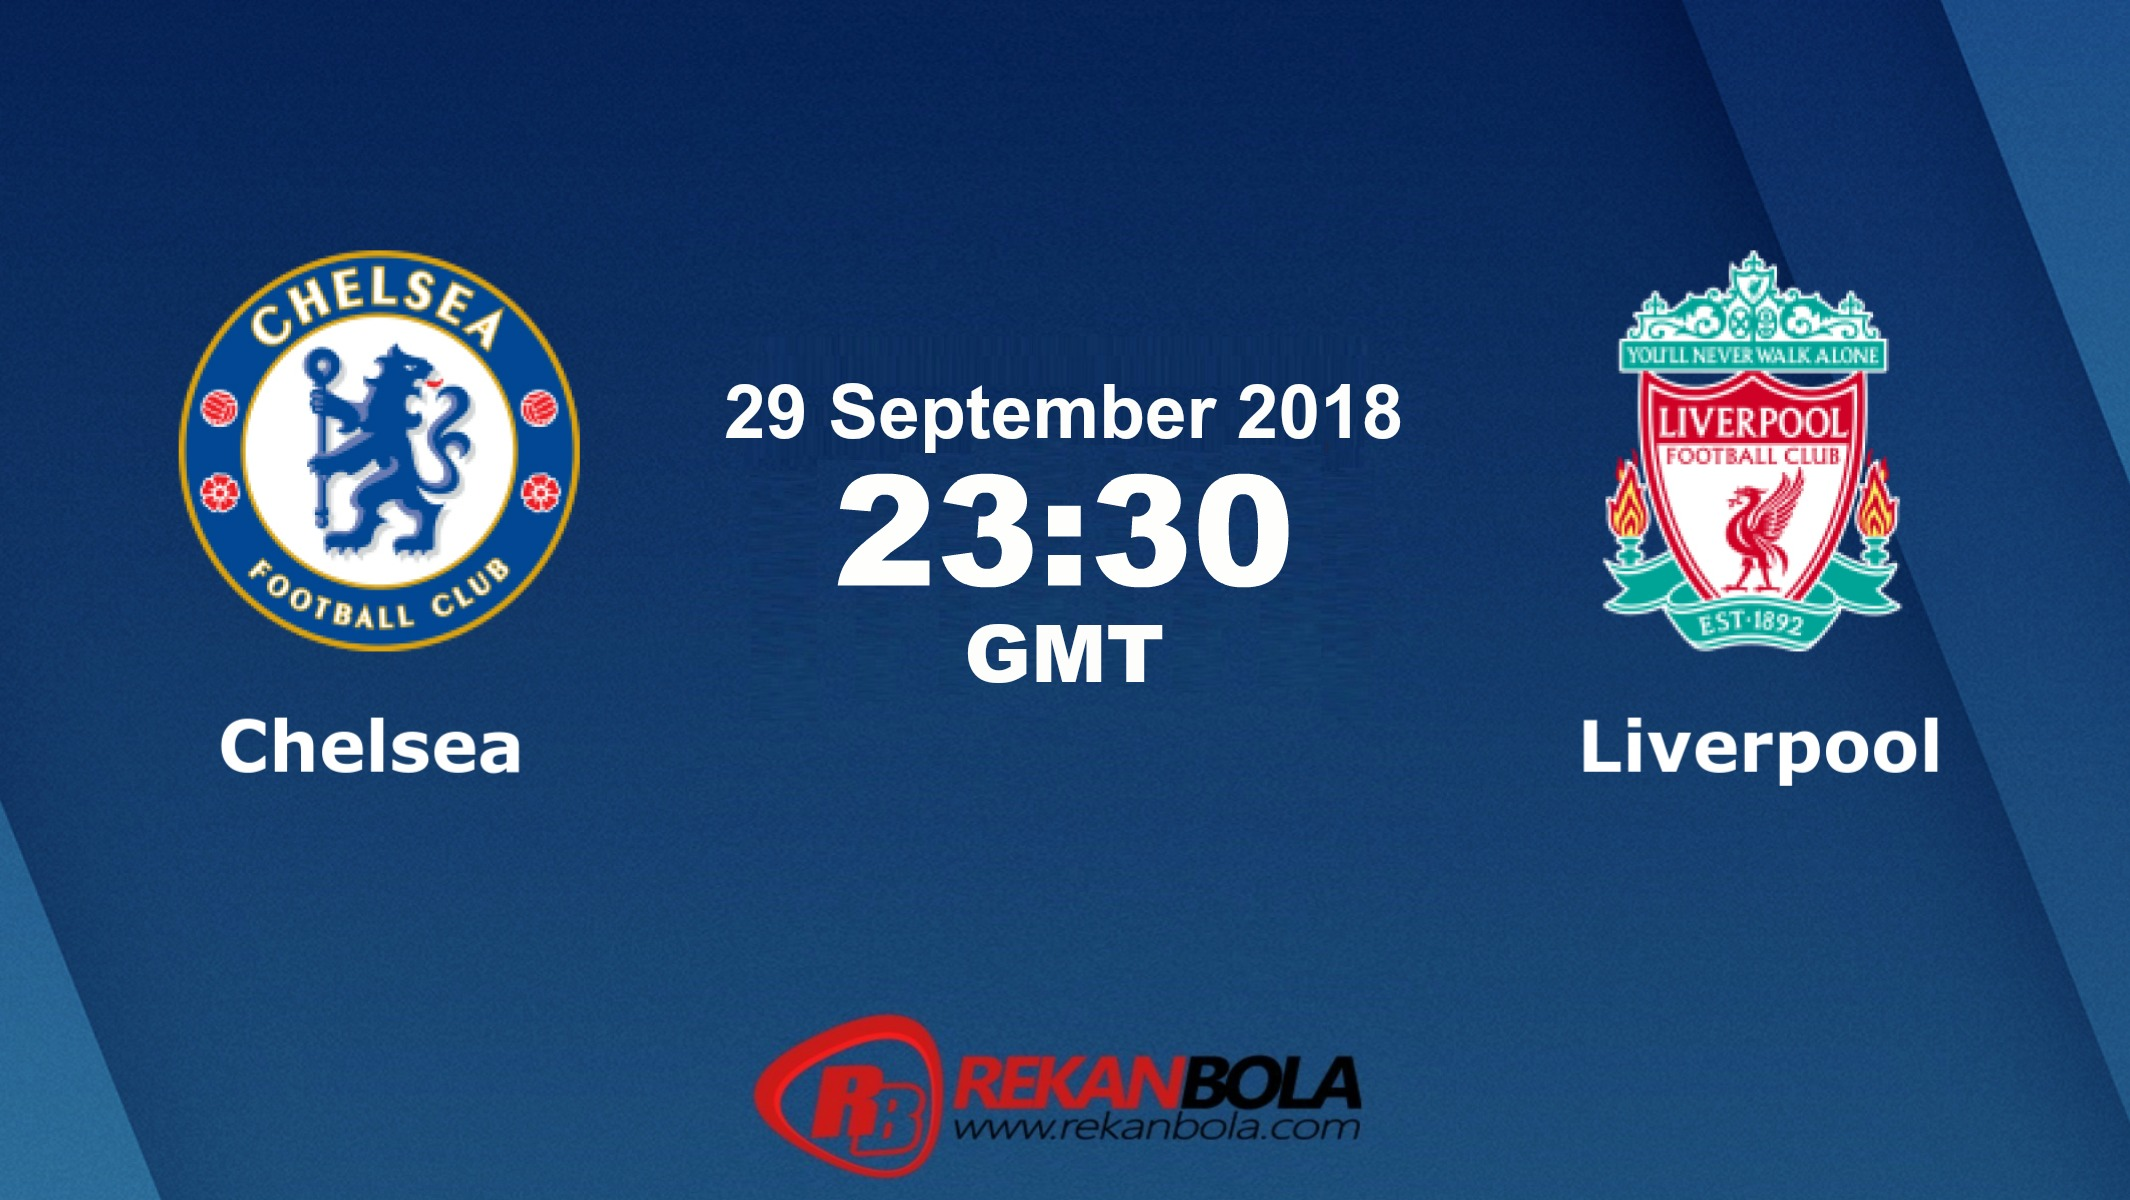 Nonton Siaran Live Streaming Chelsea Vs Liverpool 29 September 2018